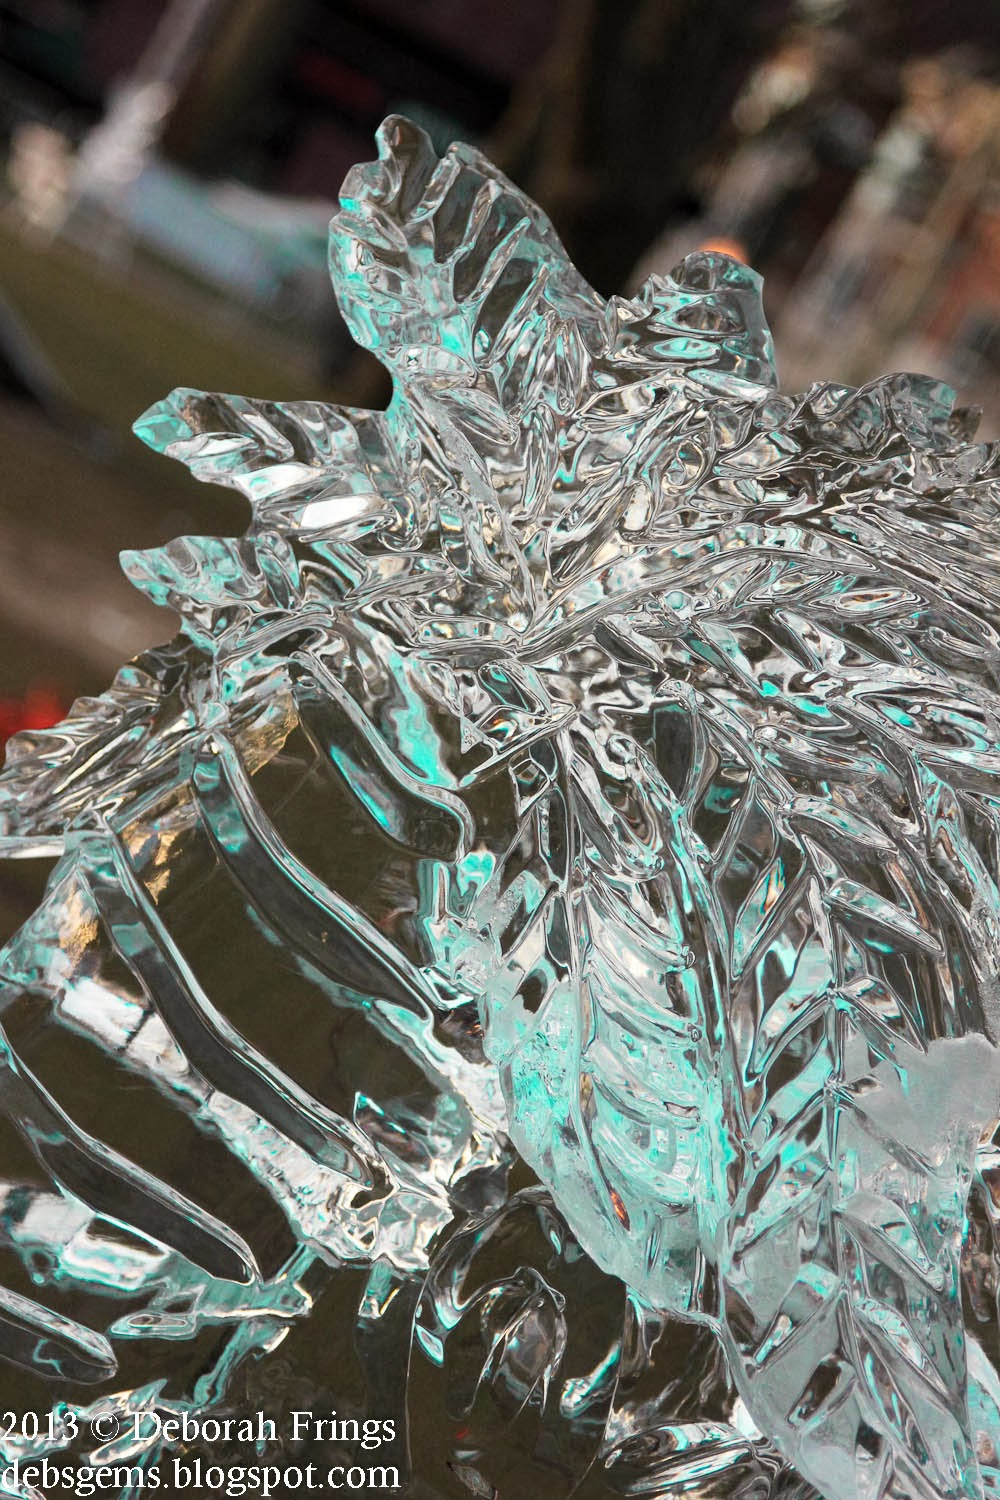 Plymouth Ice Festival January 2013 - photo by Deborah Frings - Deborah's Gems